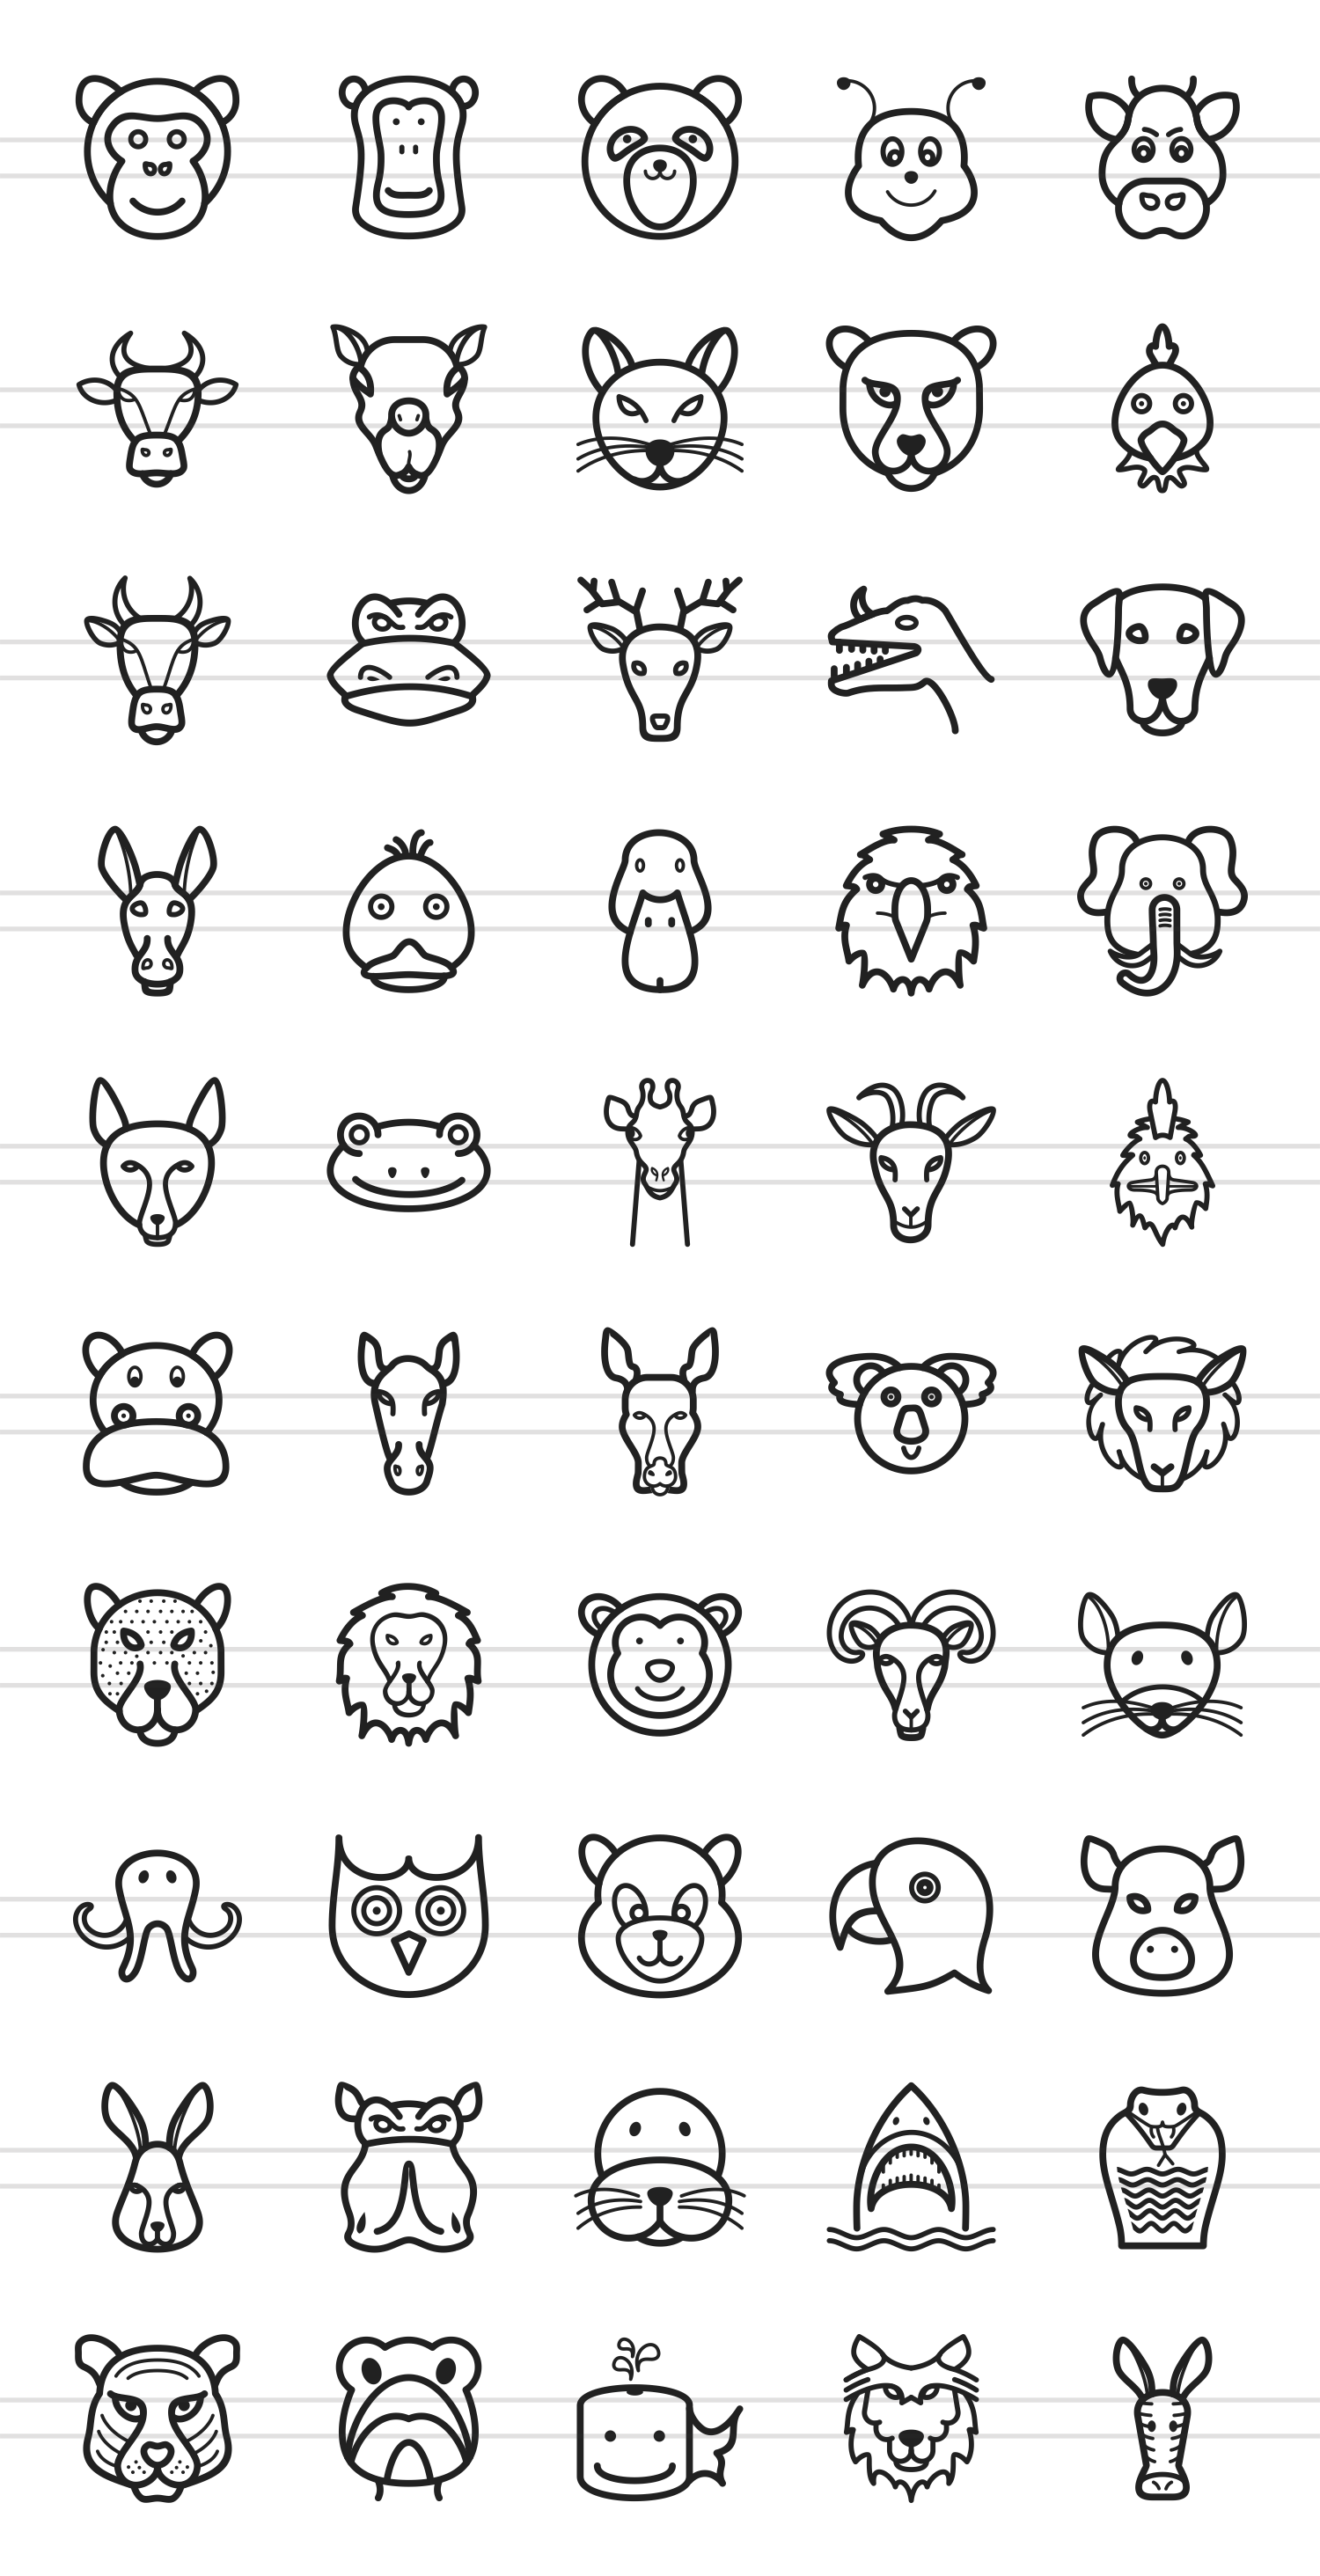 50 Animal Faces Line Icons example image 2